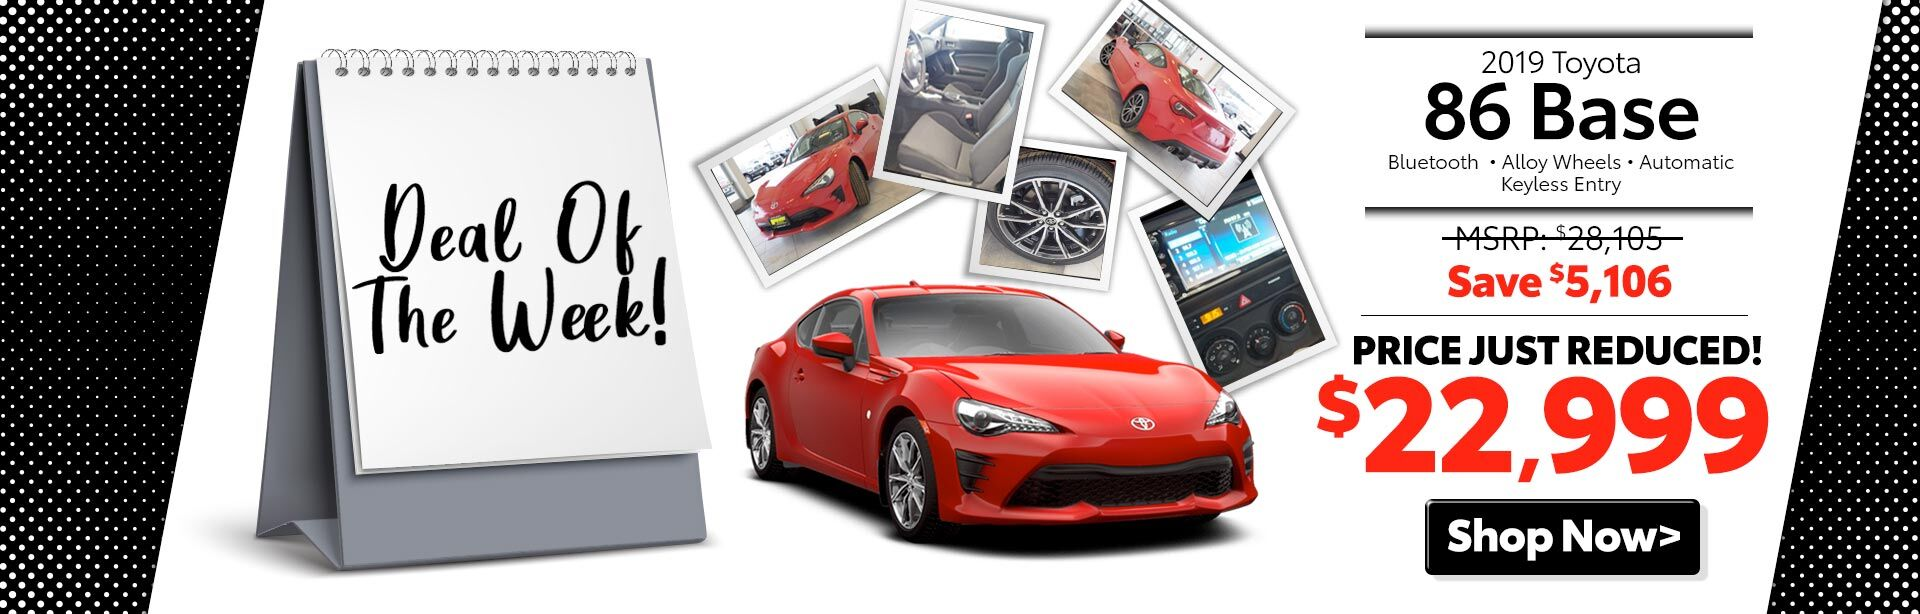 2019 Toyota 86 Base at McGee Epping